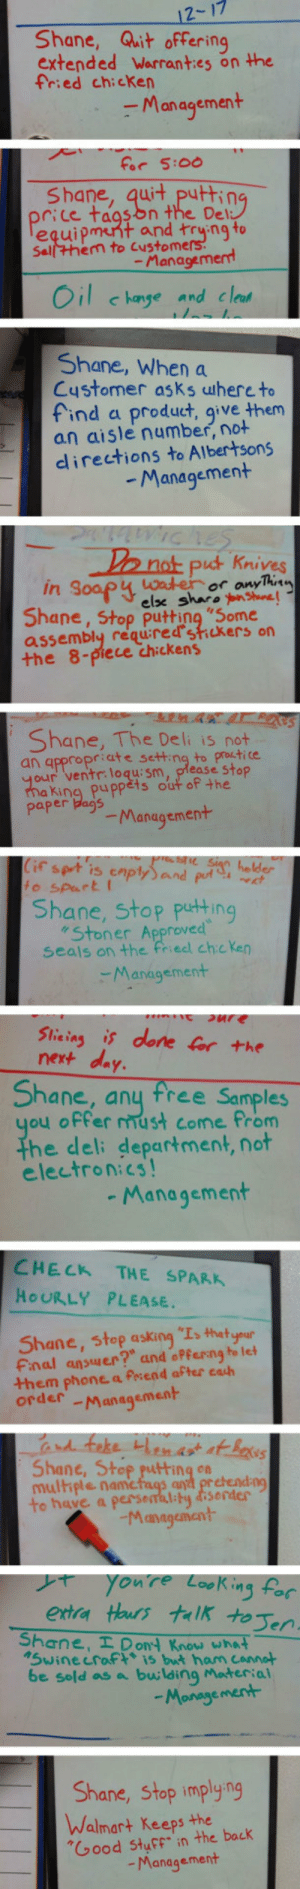 """srsfunny:  I Want To Go Where Shane Workshttp://srsfunny.tumblr.com/: 12-17  Shane, Quit offering  extended Warranties on the  fried chicken  - Management  for 5:00  Shane, quit putting  price tagsbn the Del:  Tequipment and trying to  Sellhem to Customers!  - Management  Oil c hange and clean  Shane, When a  Customer asks uhere to  find a product, give them  an aisle number, not  directions to Albertsons  - Management  Do not put Knives  water  elx sharo onshune!  Shane, Stop putting """"Some  assembly requ:redstickers on  the 8-piece chickens  in Soopy  or anyThinn  Shane, The Deli is not  an appropriate setting to practice  your ventr: loqu: sm, please stop  ma king puppèts out of the  paper dags  -Management  Cif sprt is enptySand put, helder  to spart I  Shane, stop putting  """"Stoner Approved  seals on the fried chic ken  -Management  sure  Slicing is done for the  next day.  Shane,  you offer ust come from  the deli department, not  electronics!  free  Samples  any  - Management  CHECK  HOURLY PLEASE.  THE SPARK  Shane, stop asking """"Is thetyour  Final answer?"""" and oPferng to let  them phone a Perend after cath  order  -Management  and feke HHenast at Bexsus  Shane, Stop putting on  multiple namefags and pretendng  to have a perseaal:ty disorder  -Management  you're Looking for  extra Haurs talk toJen.  Shane, I Dont Know what  1Swinecraf* is but ham cannot  be sold as a bulding Material  -Monagement  Shane, stop implying  Walmart Keeps the  """"Good Stuff"""" in the back  - Management srsfunny:  I Want To Go Where Shane Workshttp://srsfunny.tumblr.com/"""